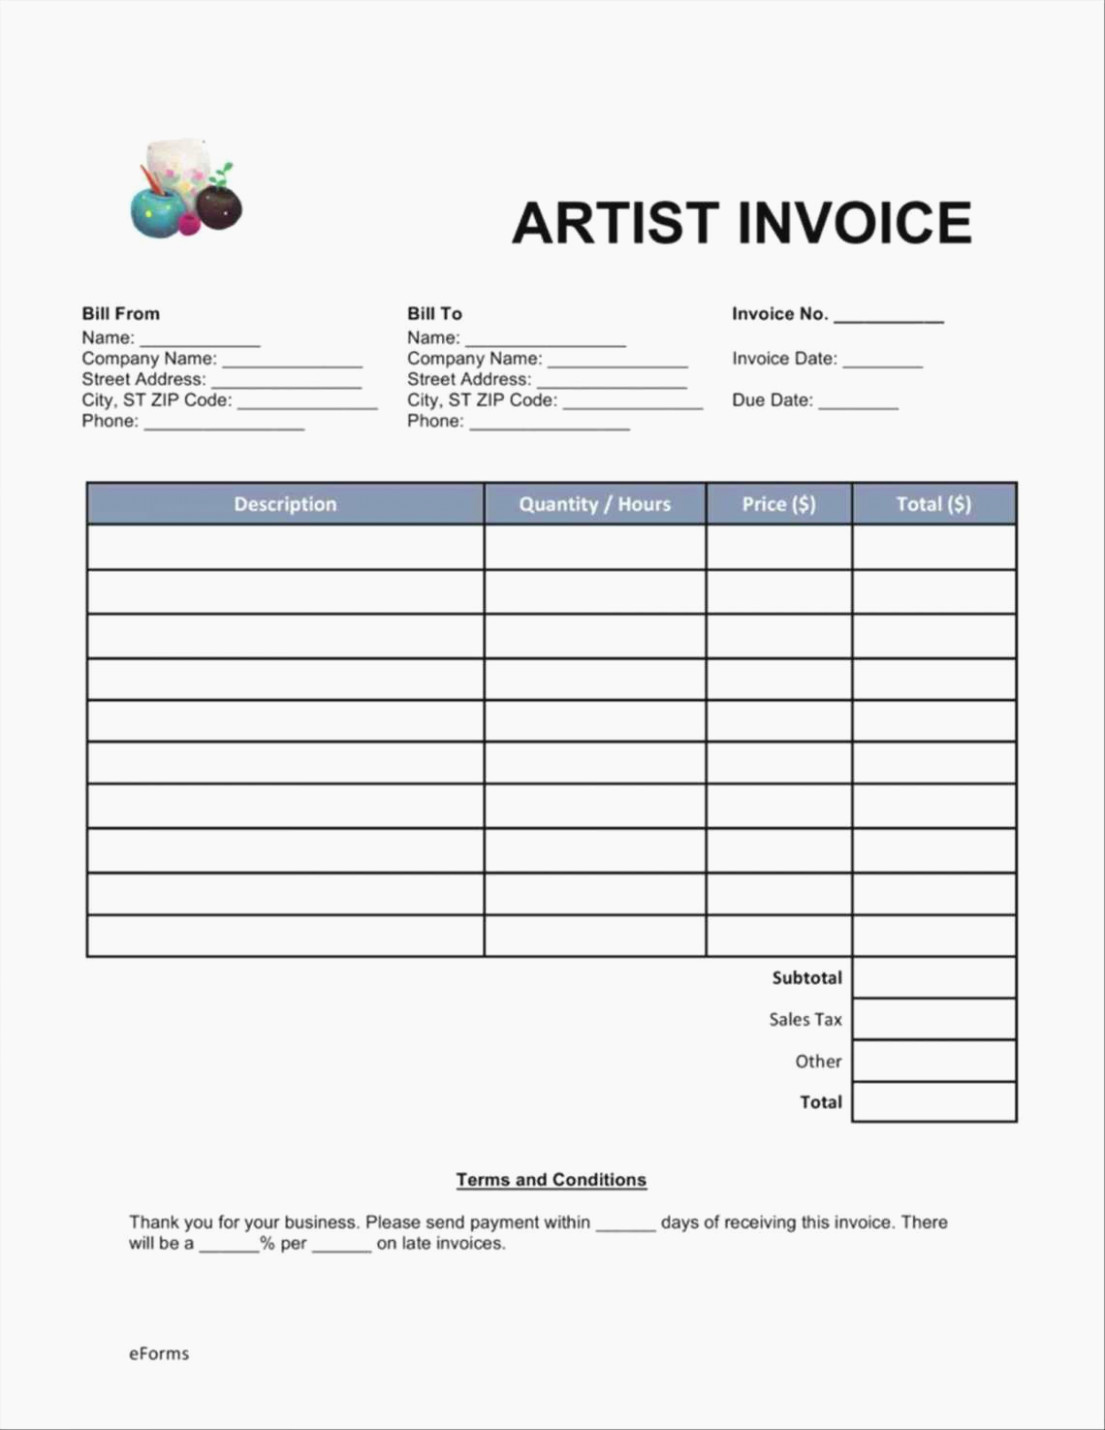 Invoice Template Fillable Pdf Fresh the Ultimate Revelation